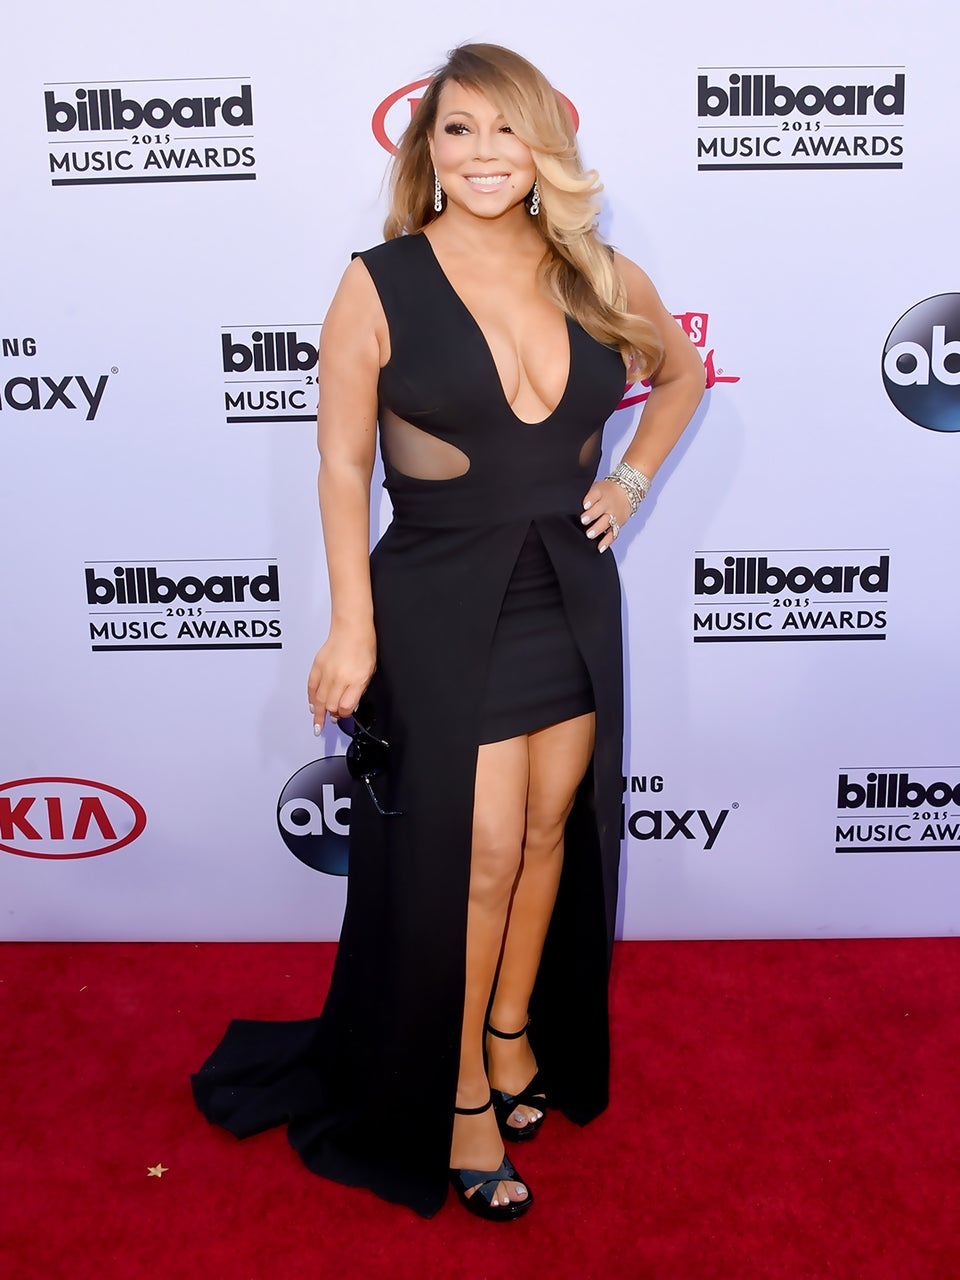 Mariah Carey Says She'll Never Renounce Her Ways: 'I'm Still Always Going to Be a Diva'